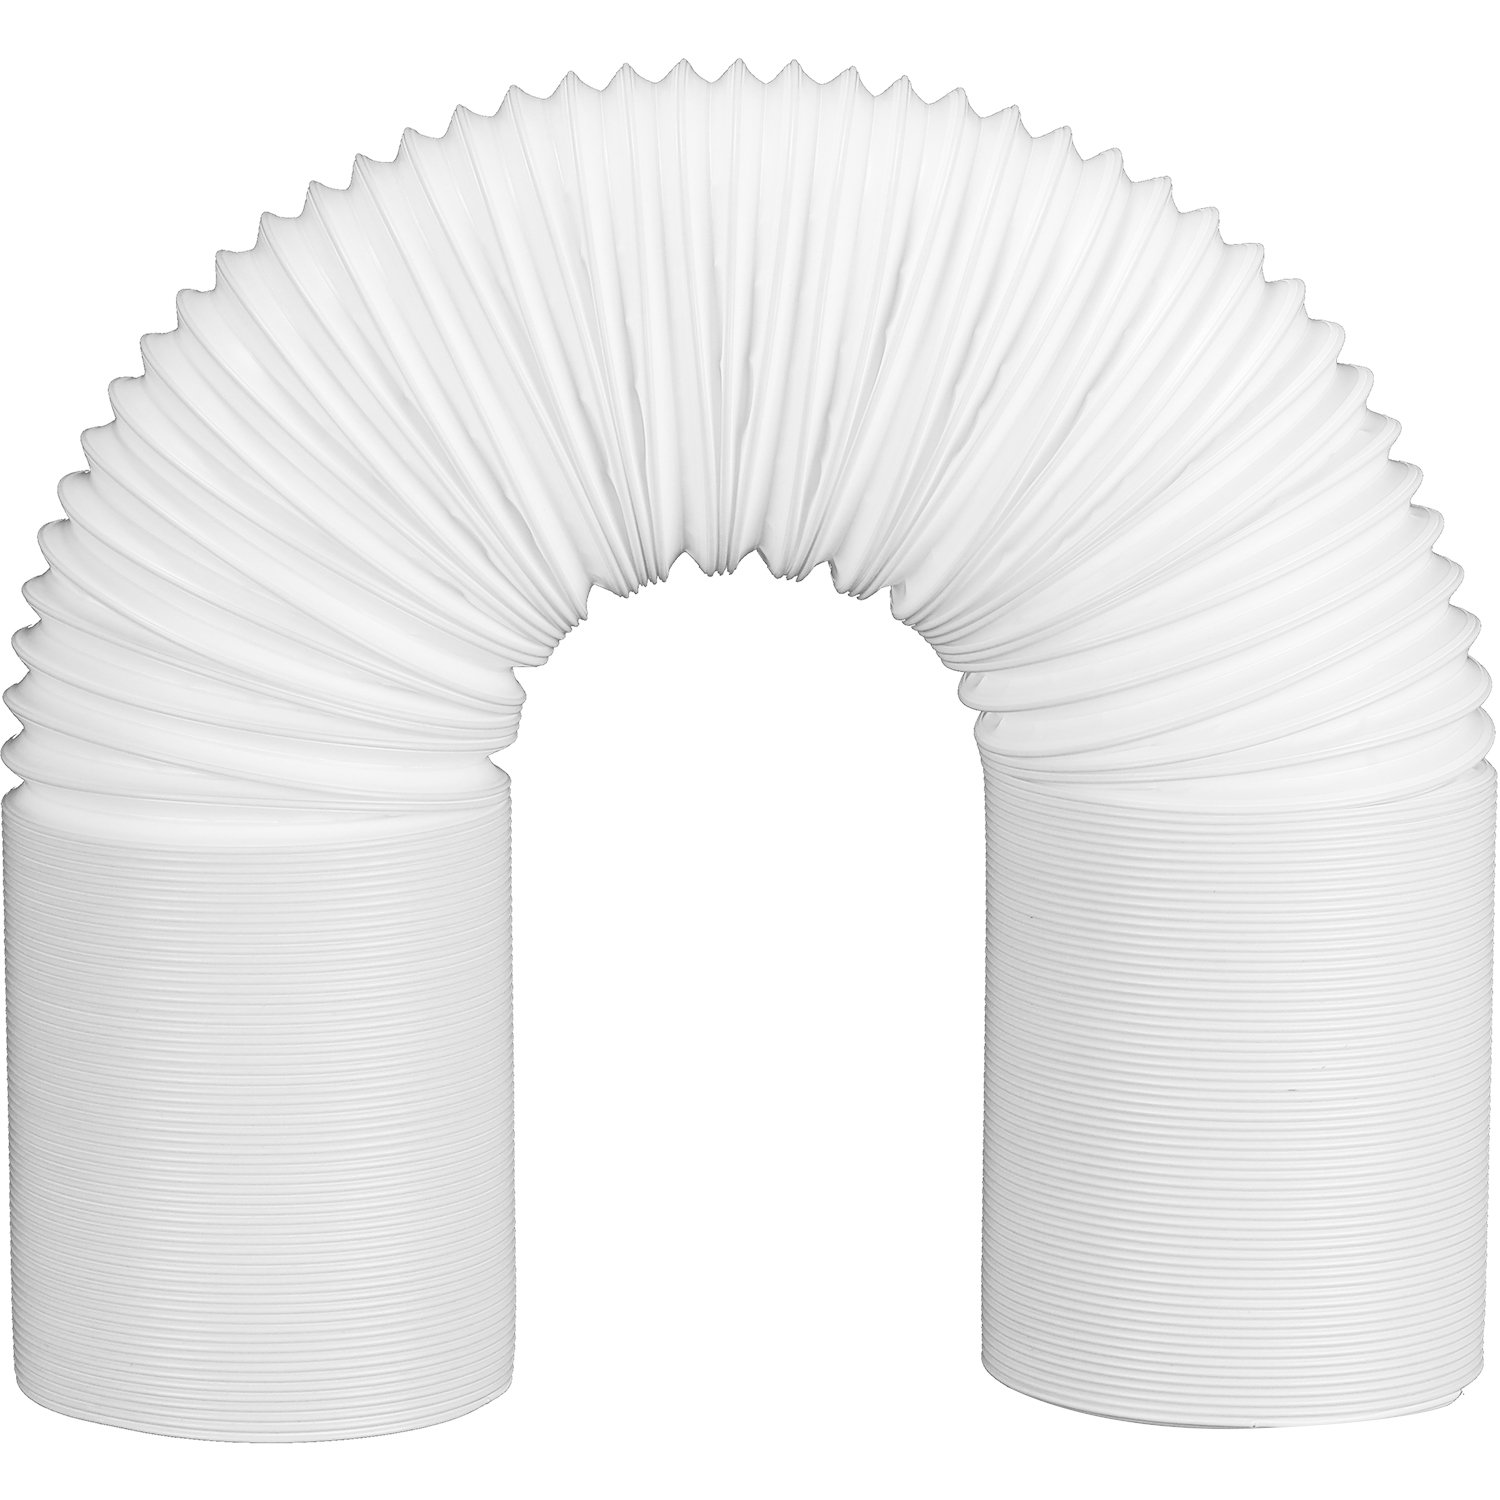 Skylety Portable Air Conditioner Exhaust Hose White, 5 Inch Diameter Universal (78.74 Inch Length)